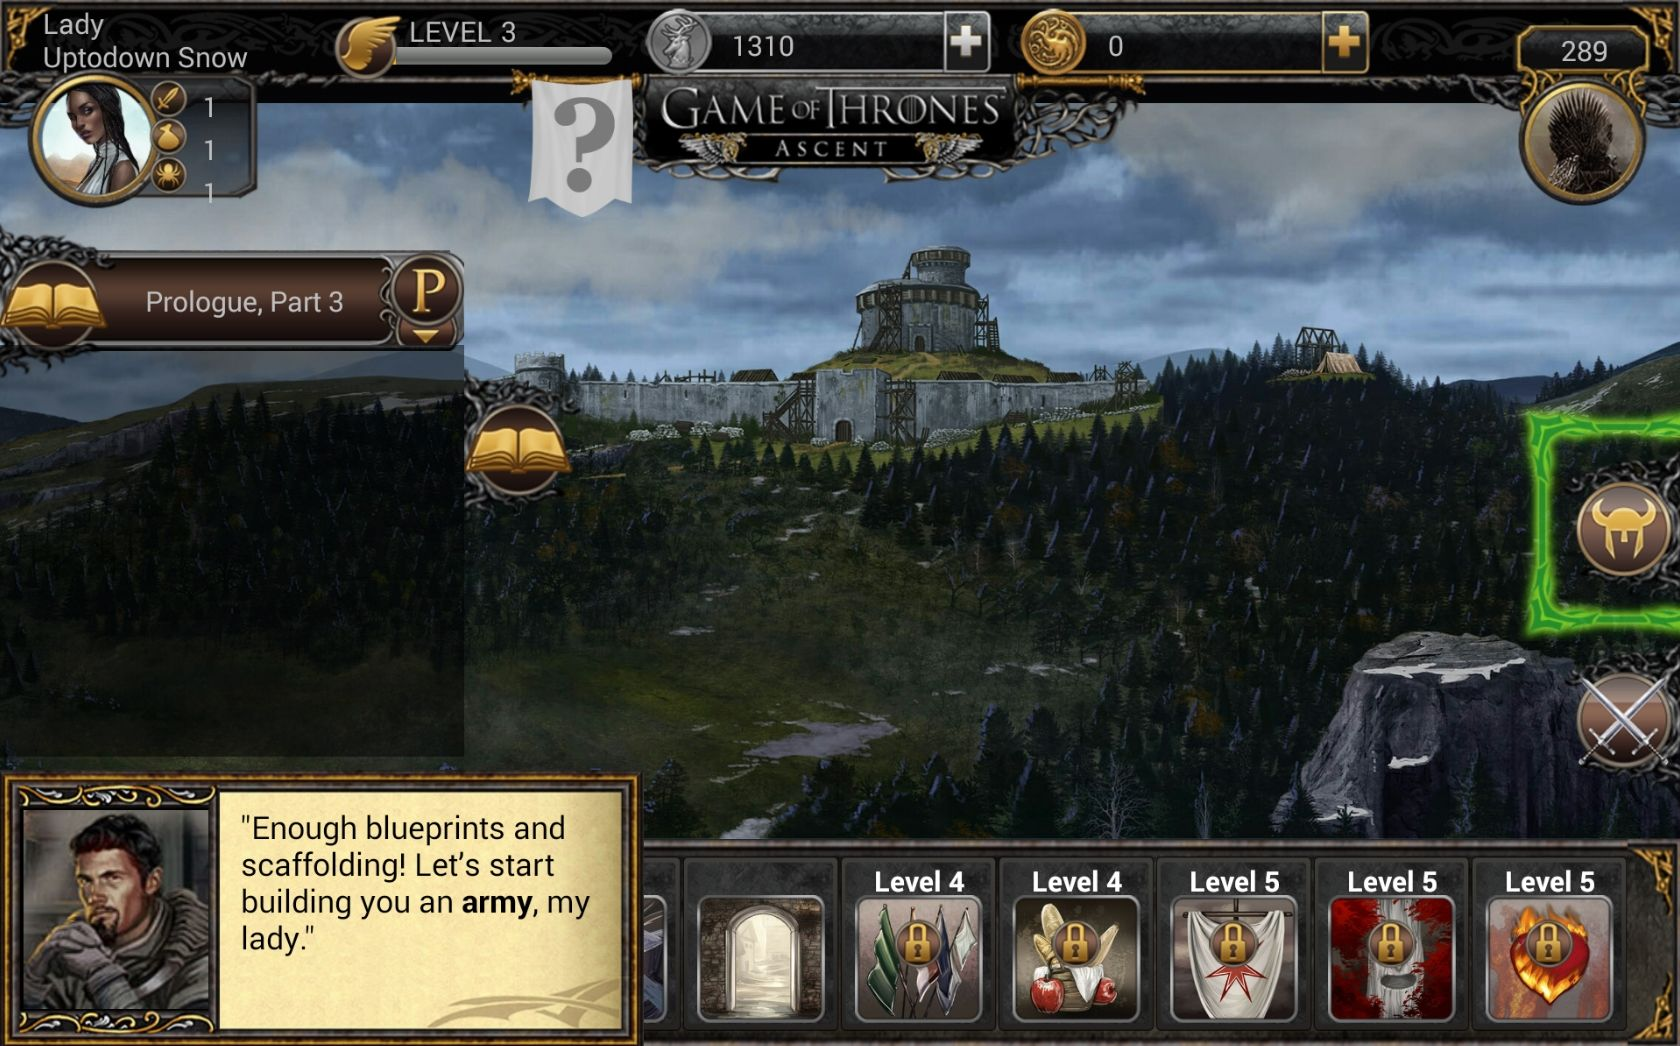 Game of Thrones Ascent comes to Android